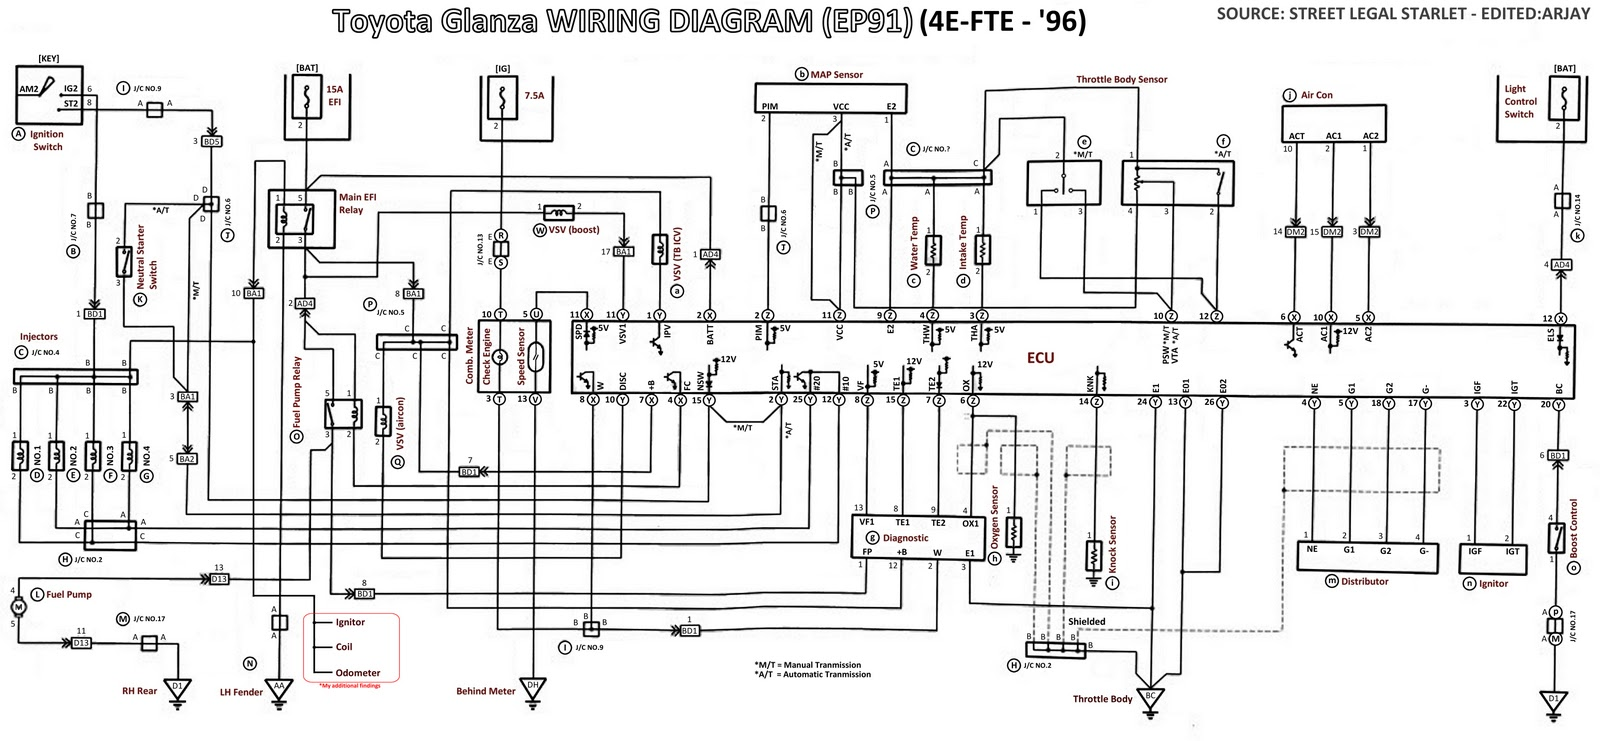 Abs Ecu Wiring Diagram Best Electrical Circuit Wabco Glanza V 4efte Powered Clubman The Mini Flyer Loom Rh Glanzamini Blogspot Com 4age 16v Meritor